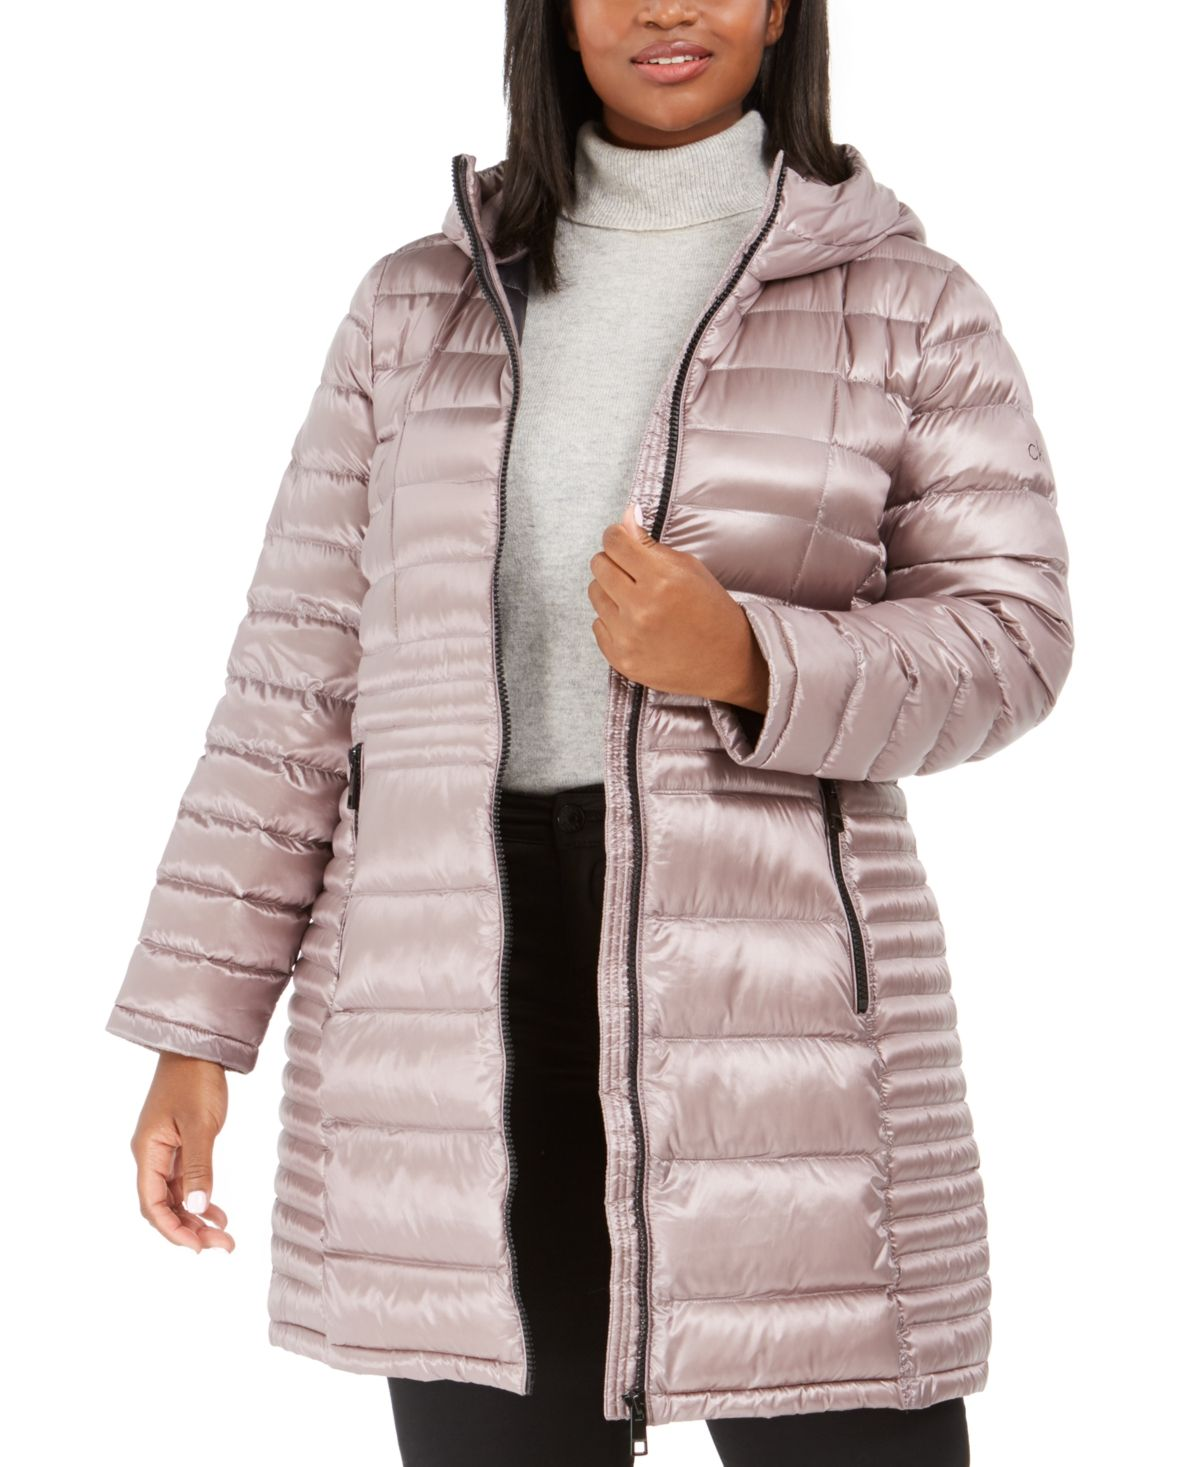 Calvin Klein Plus Size Hooded Packable Puffer Coat Created For Macy S Reviews Coats Plus Sizes Macy S Puffer Coat Calvin Klein Plus Size Girls Jacket [ 1467 x 1200 Pixel ]